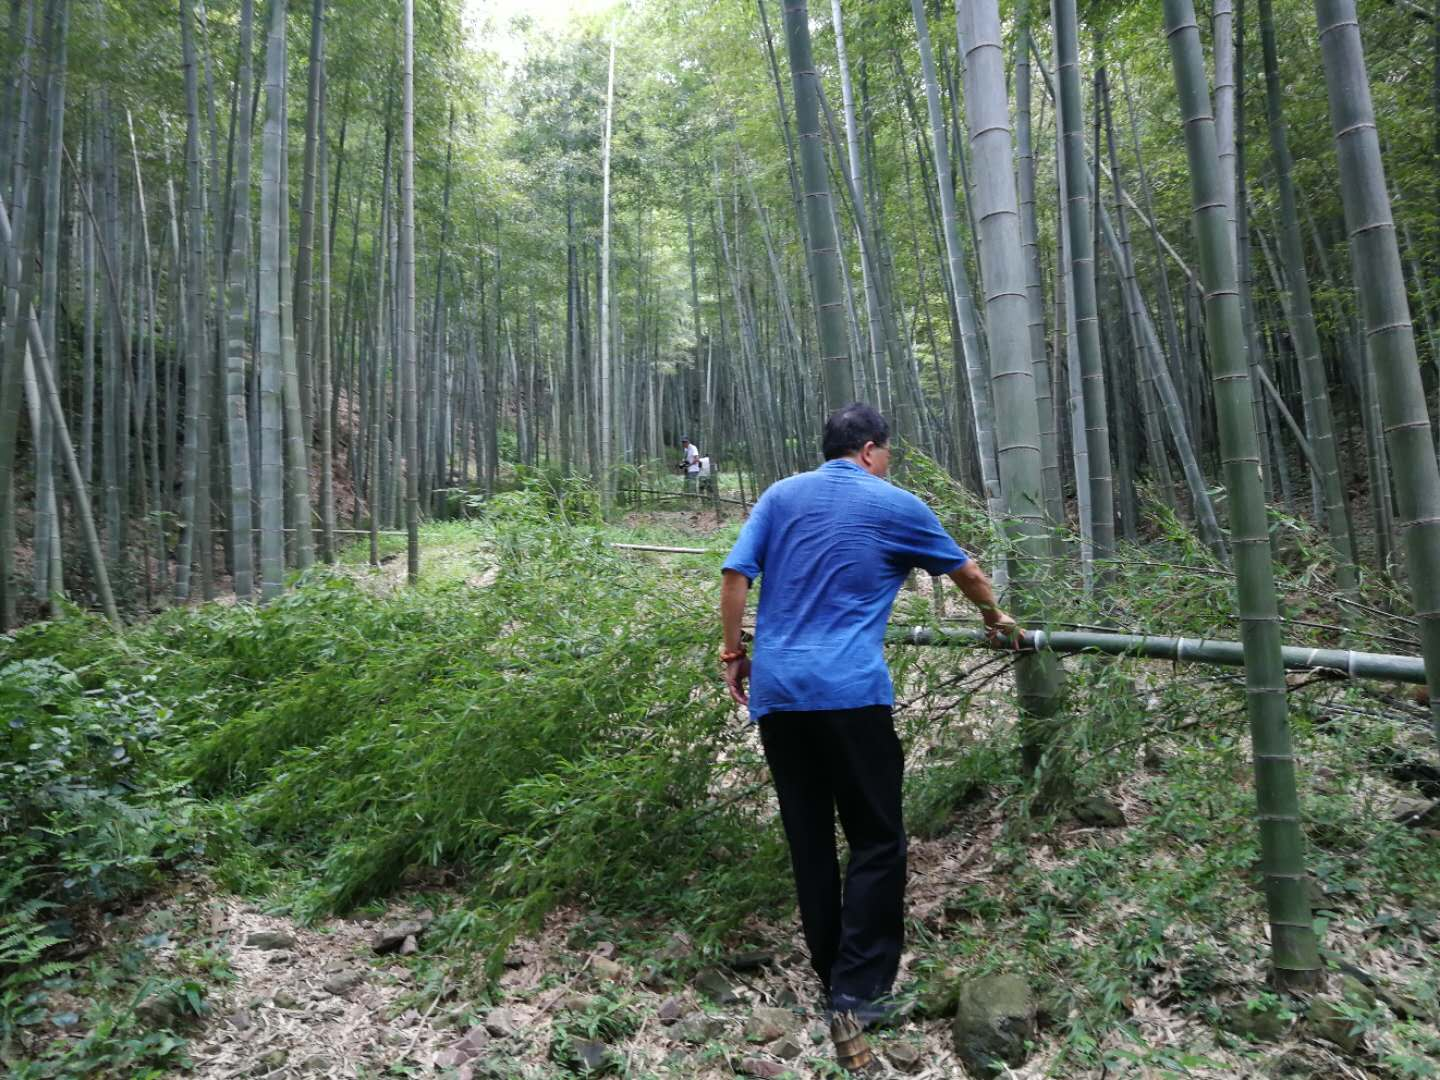 - Chen tried to cross the bamboo just fell down a couple of days ago.